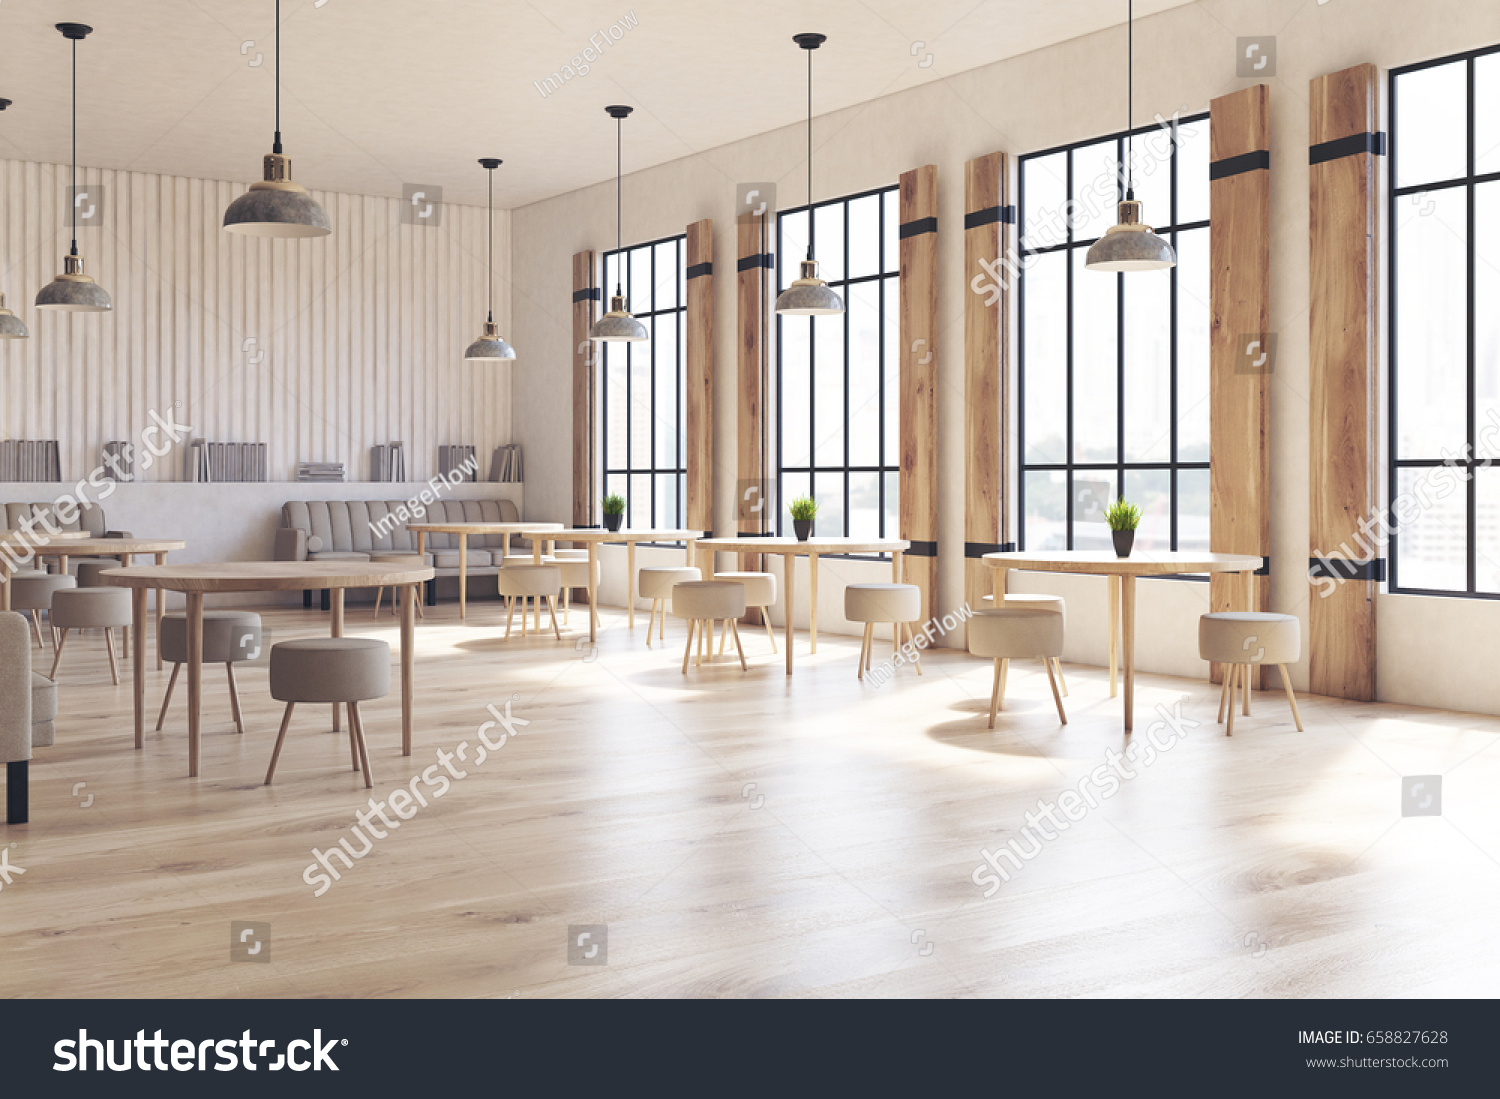 side view of a modern cafe interior with concrete walls and floor wooden shutters at - Concrete Cafe Interior